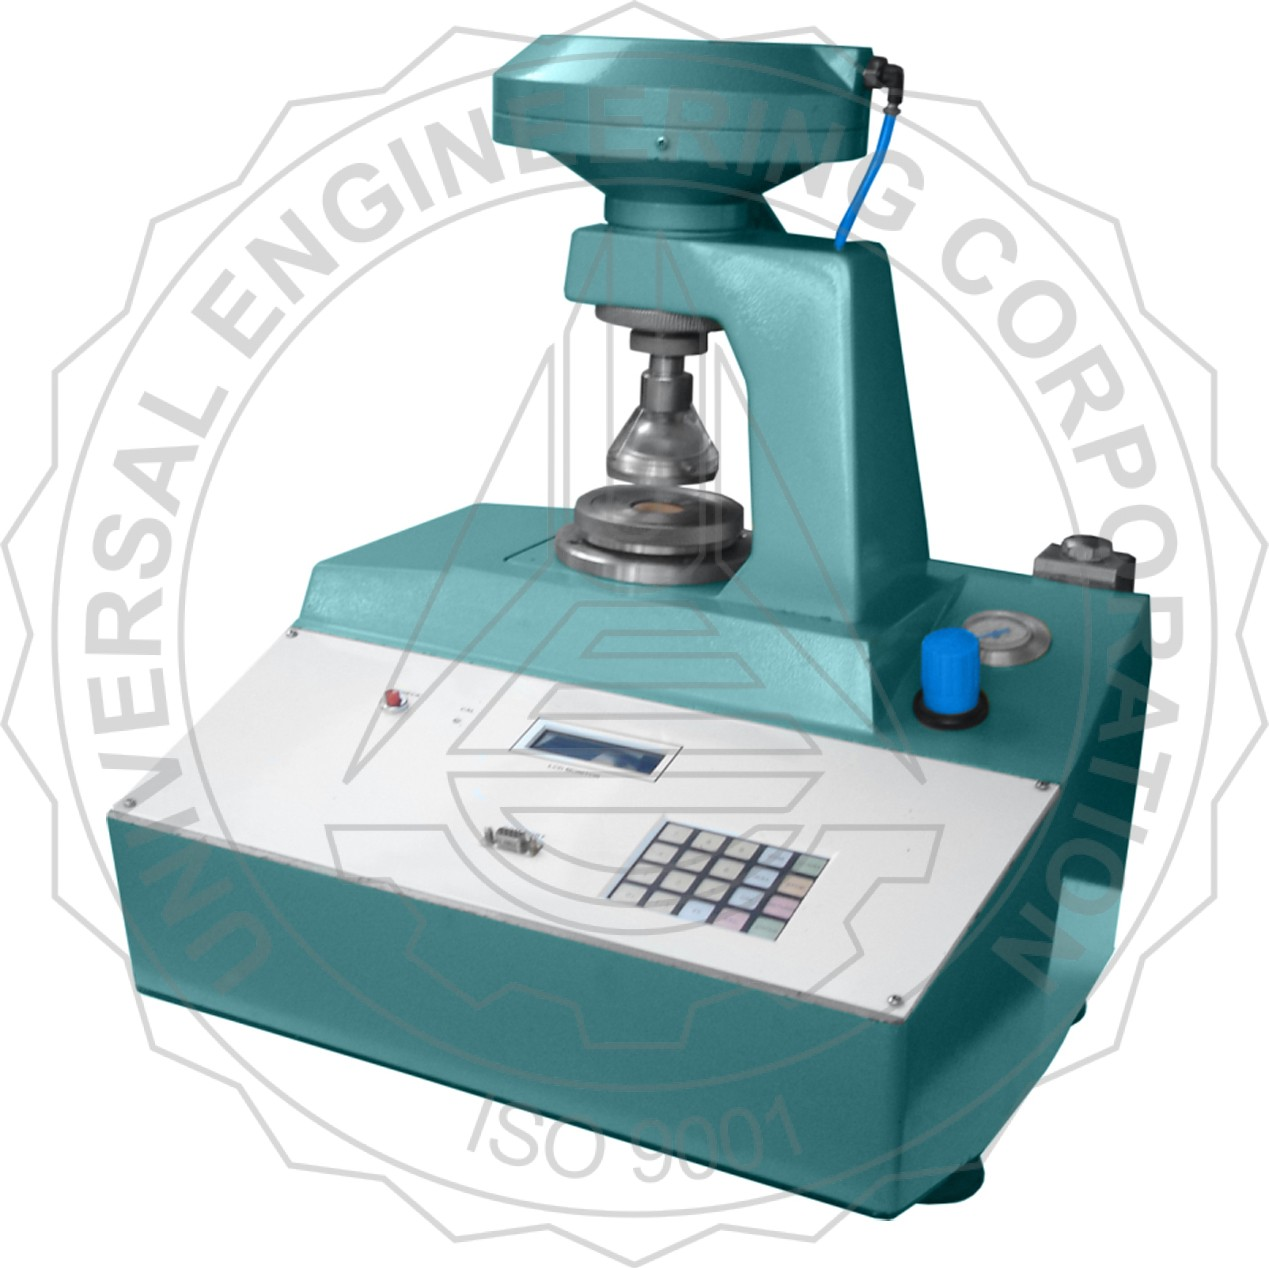 BURSTING STRENGTH TESTER - KEYPAD OPERATED (PNEUMATIC CLAMPING) FOR PAPER / PAPER BOARD